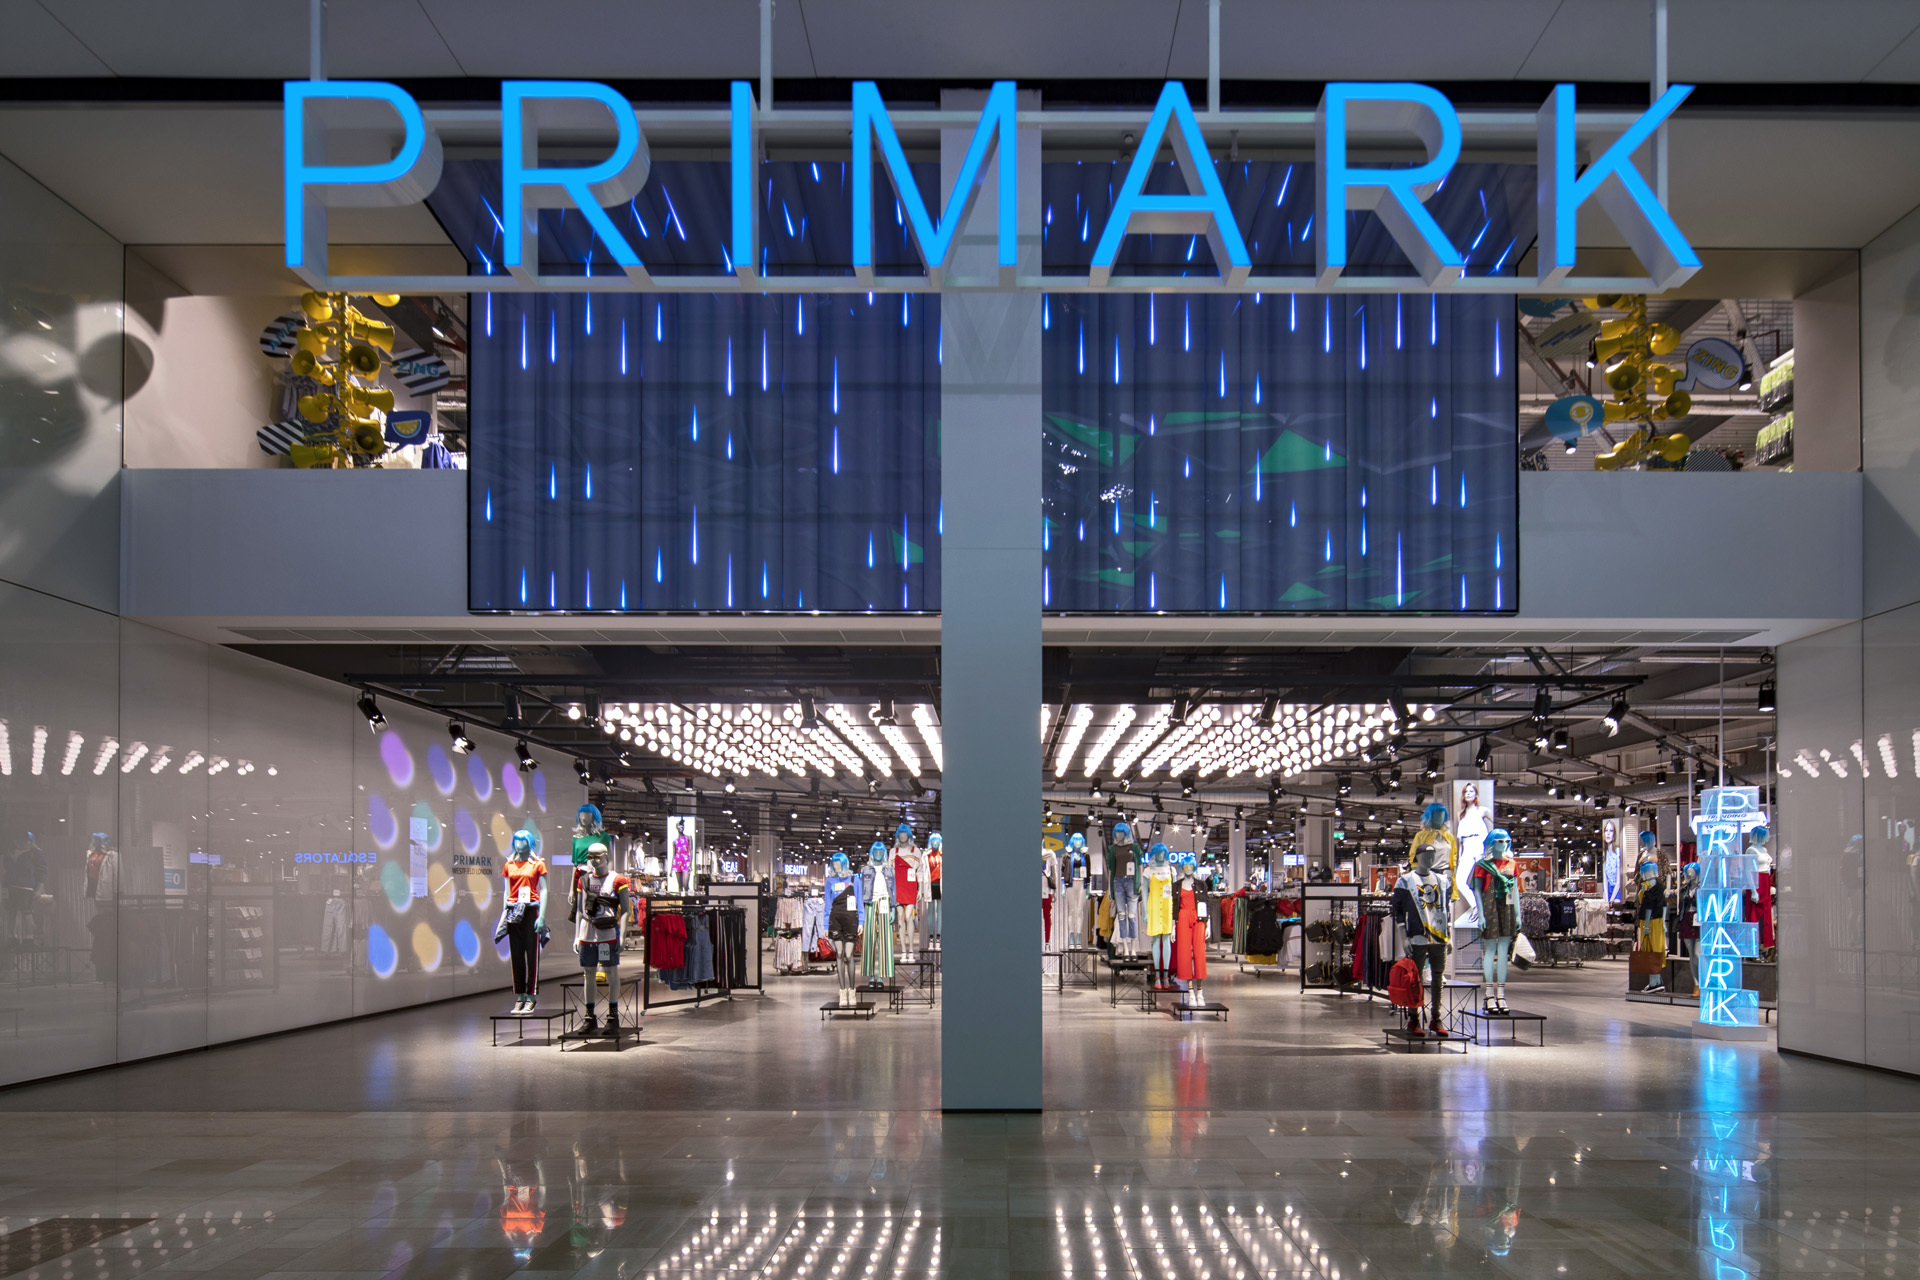 New wave of Primark contracts image